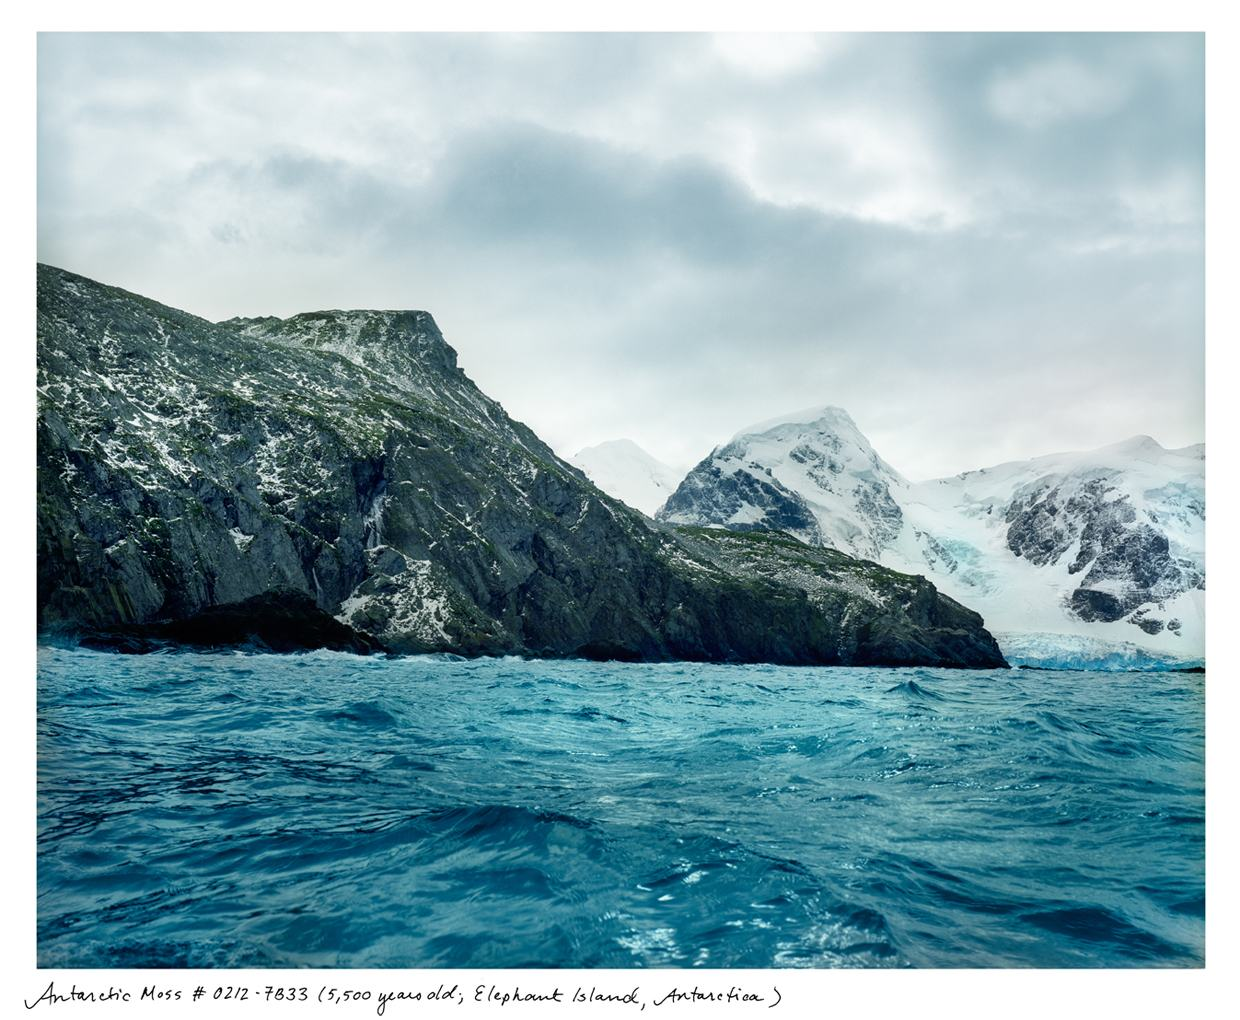 from Rachel Sussman's The Oldest Living Things in the World - Antarctica